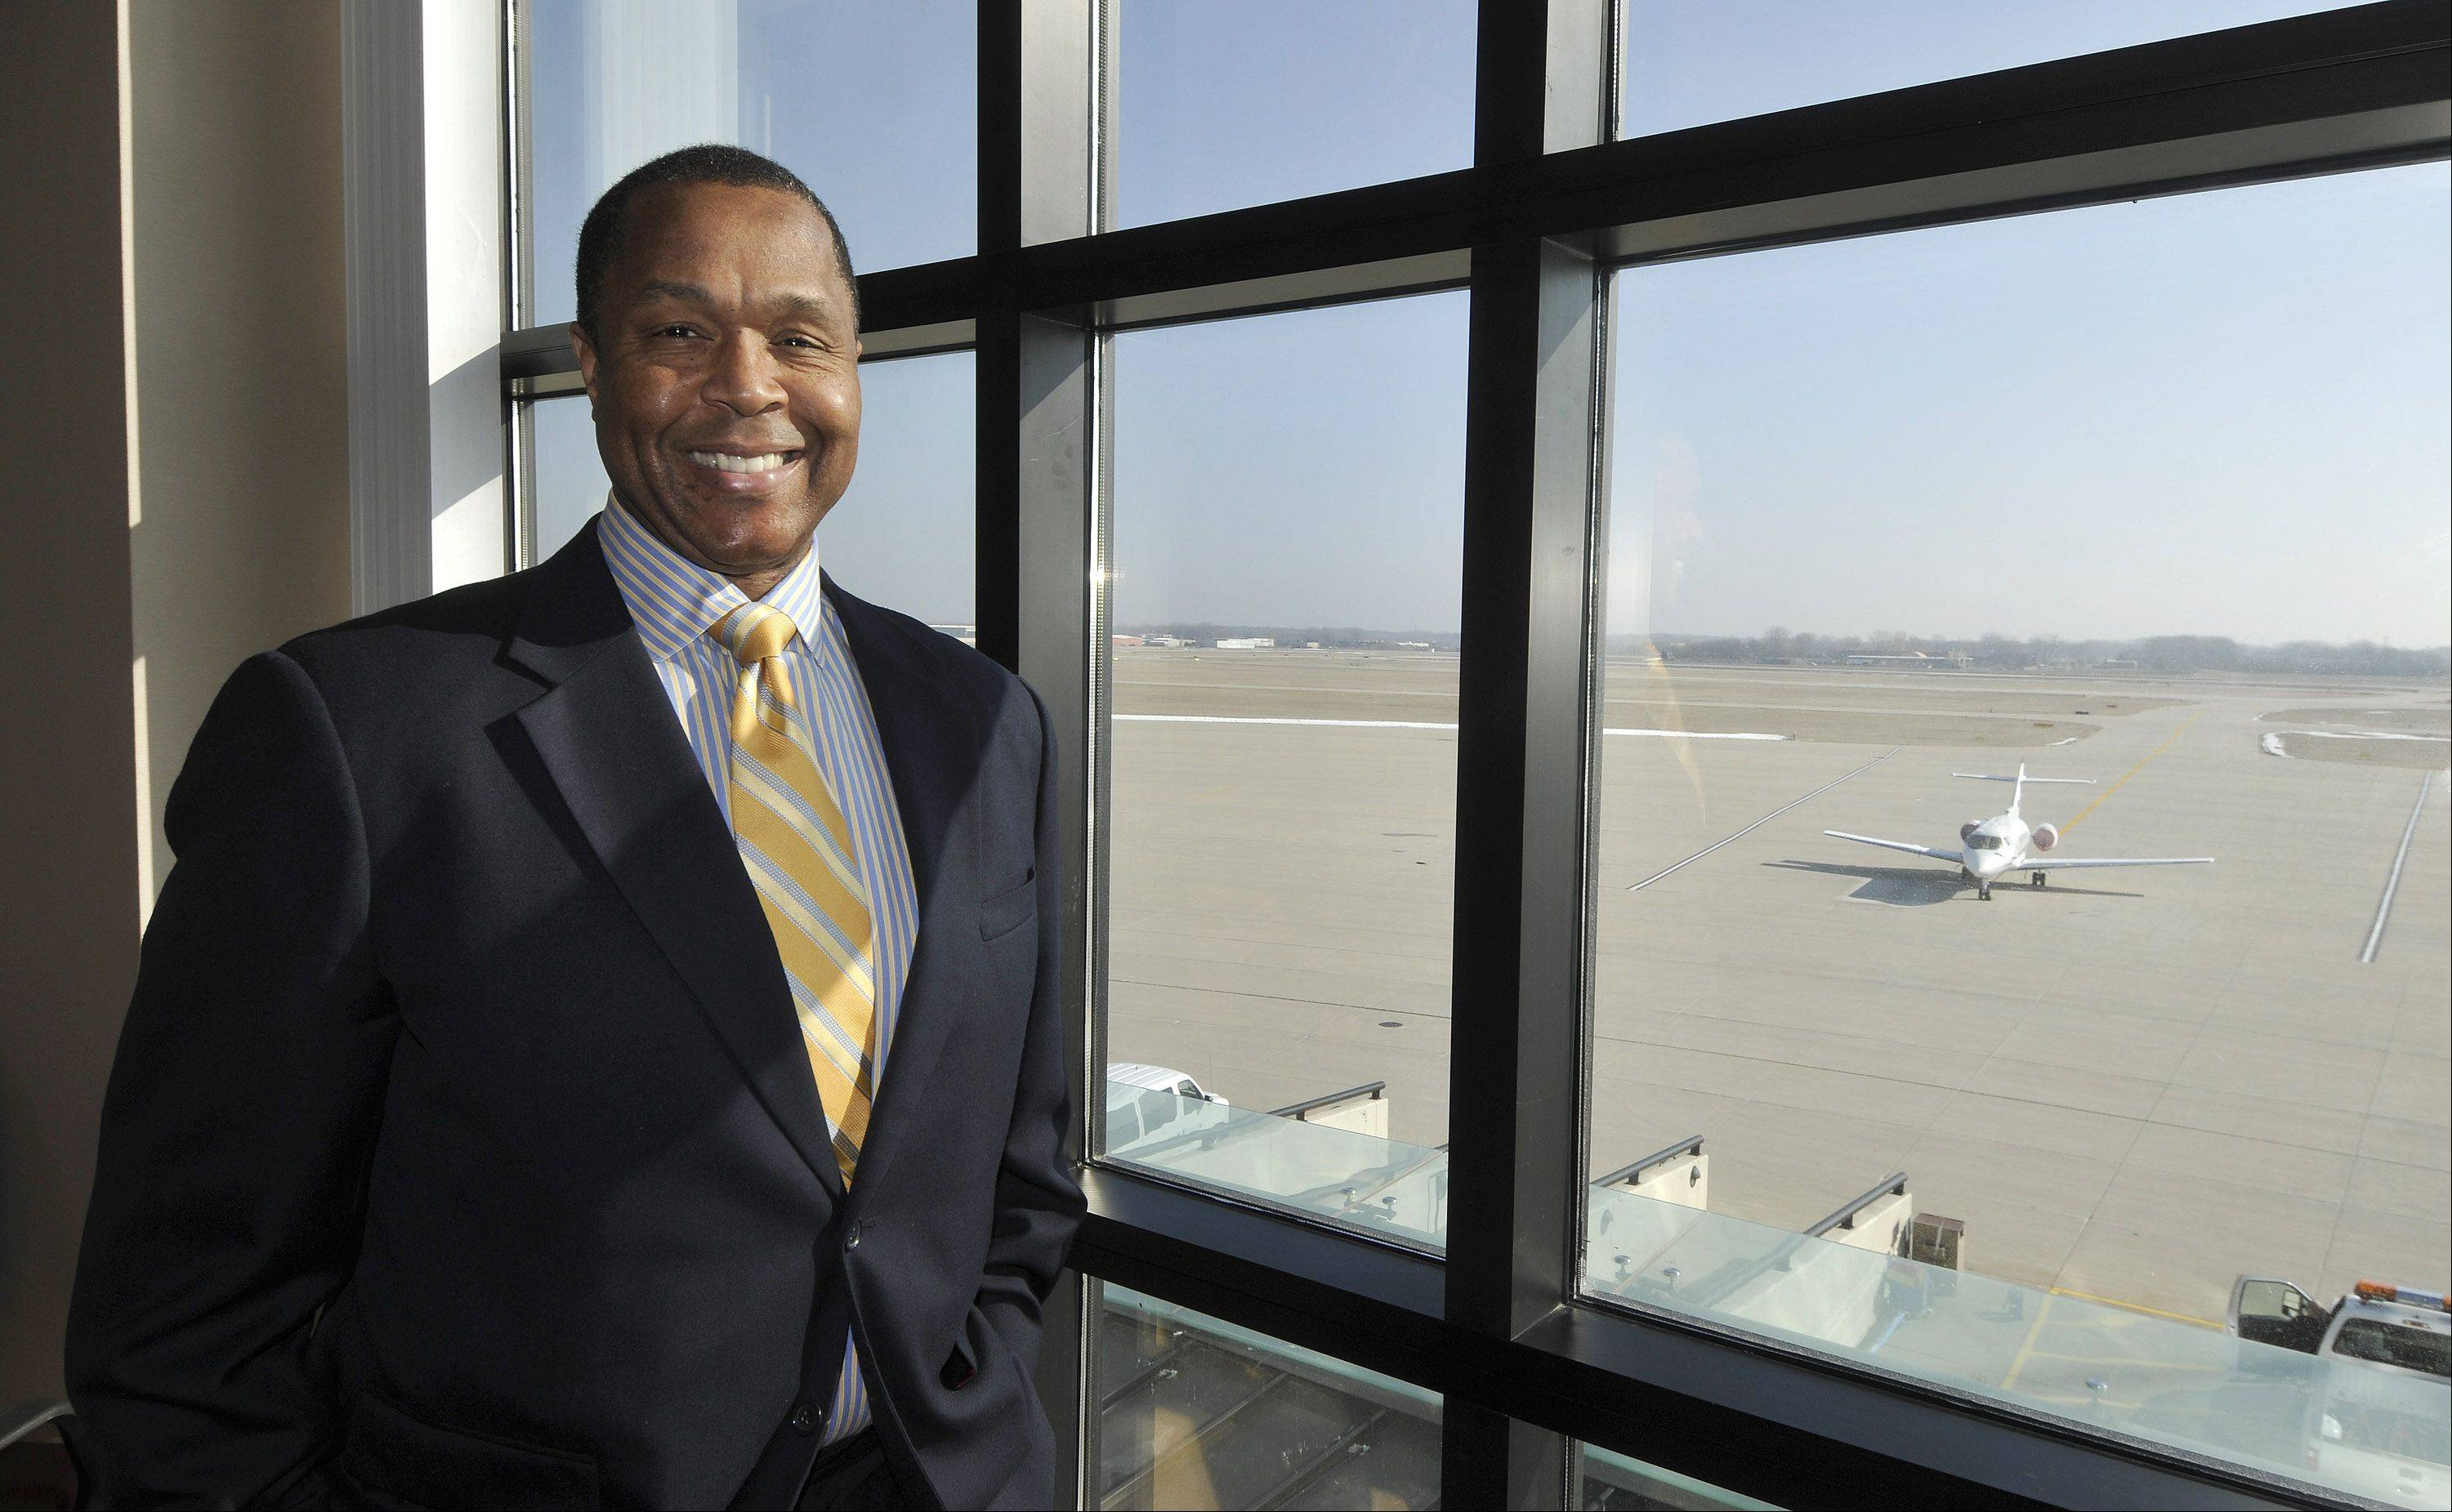 Stephen Davis, the new chairman of the DuPage Airport Authority Board, is no stranger to efforts to improve the facility in West Chicago.